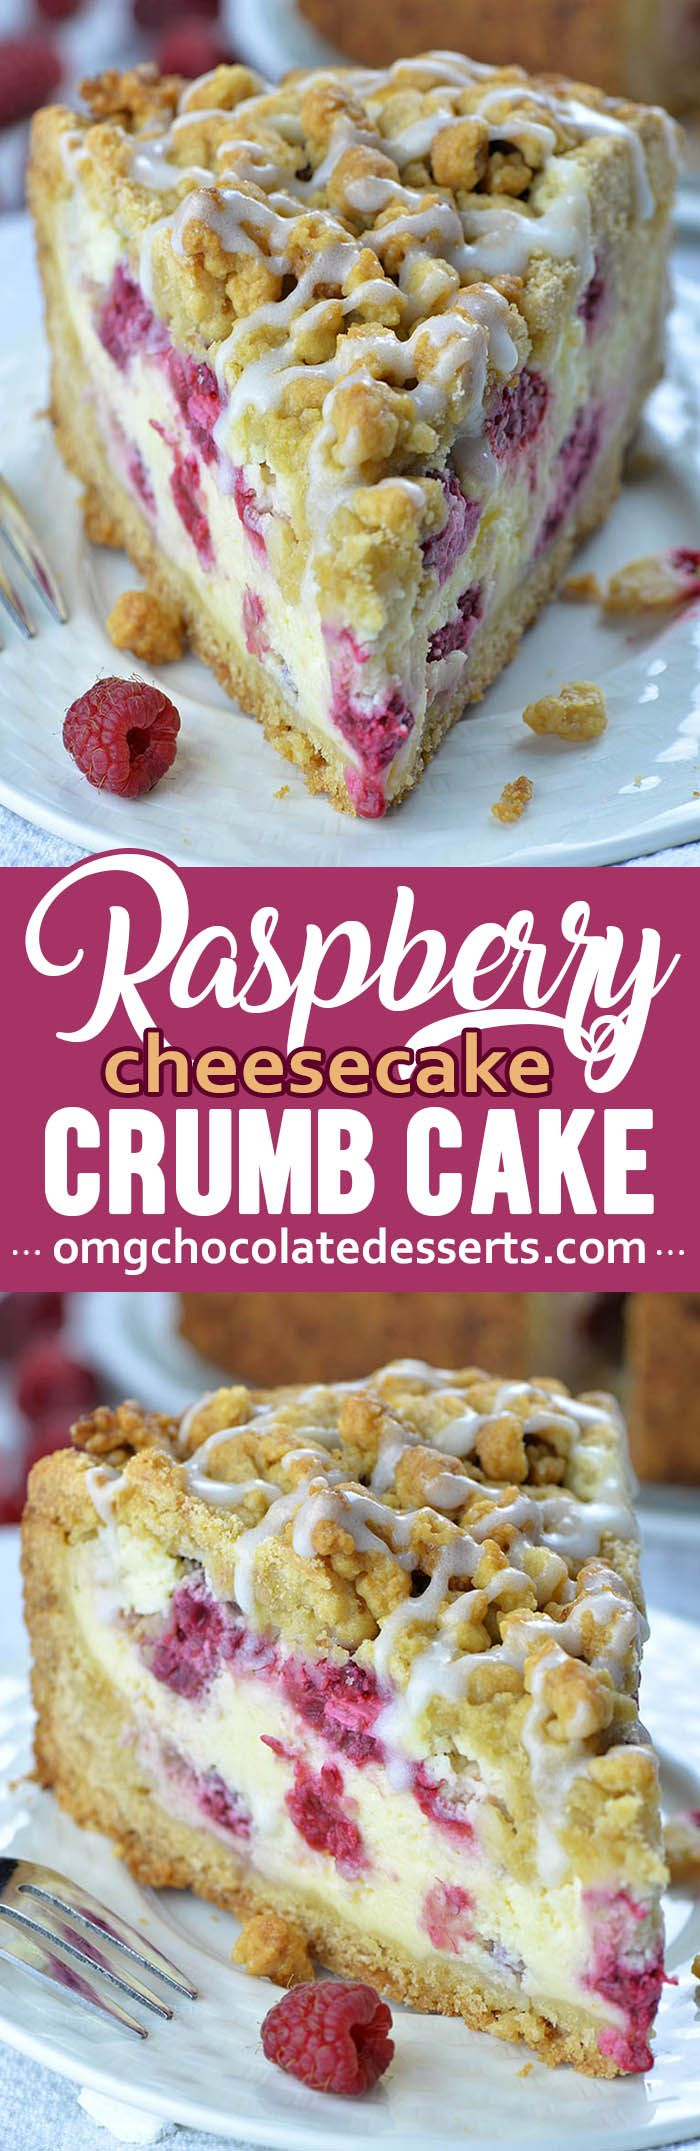 Raspberry Cheesecake Crumb Cake